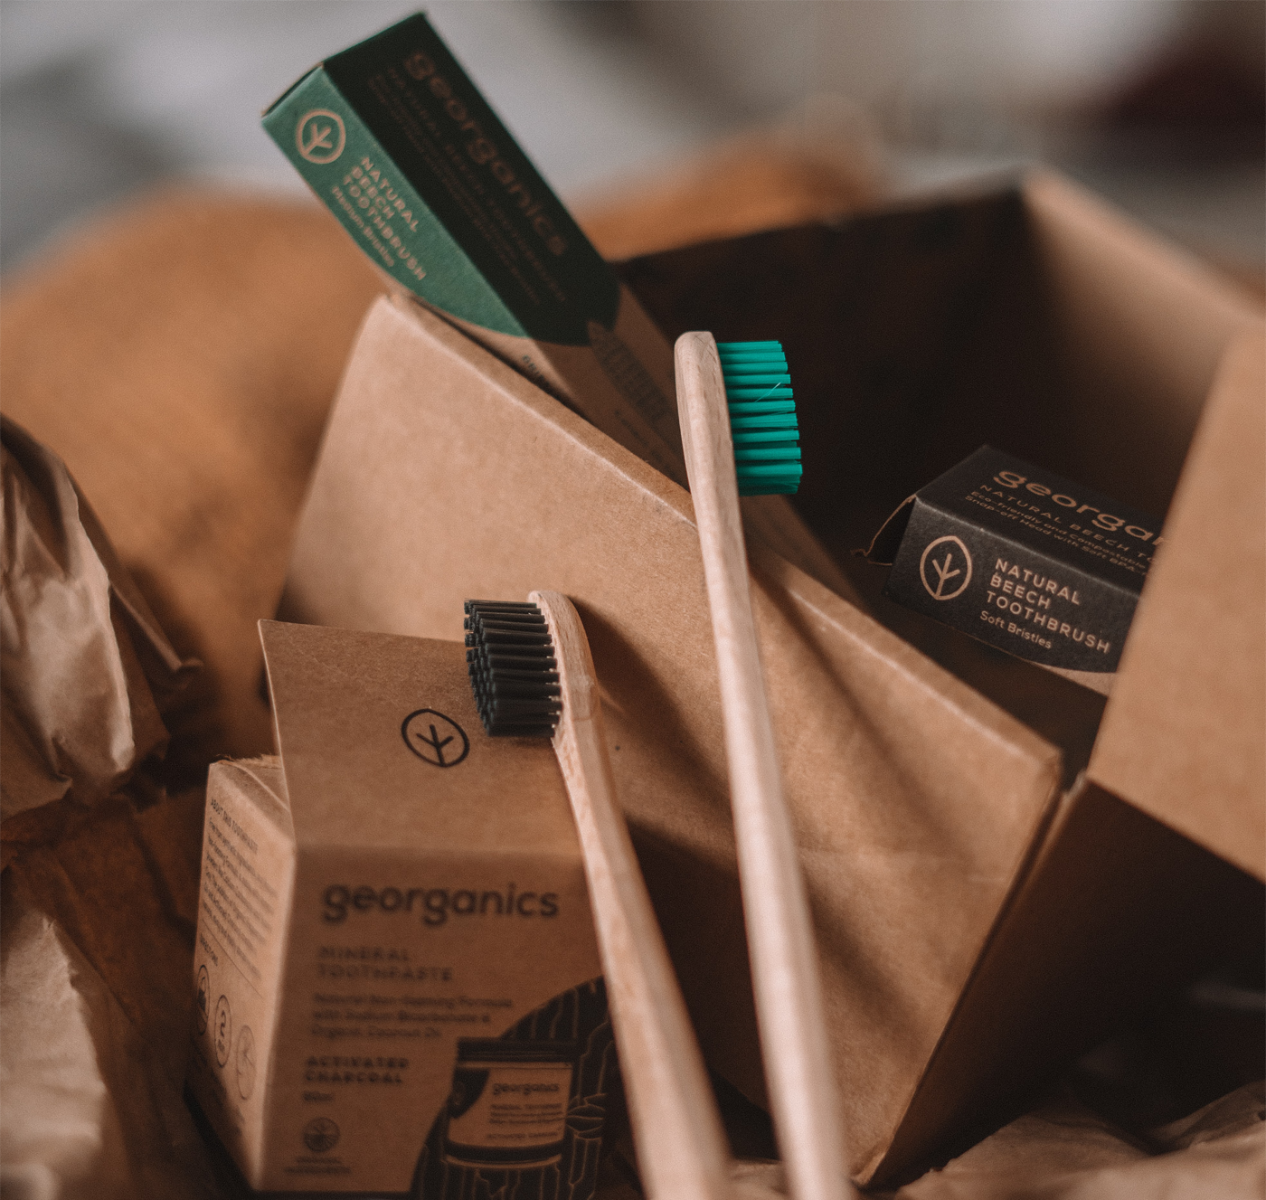 wooden toothbrushes packaged in small recyclable corrugated boxes